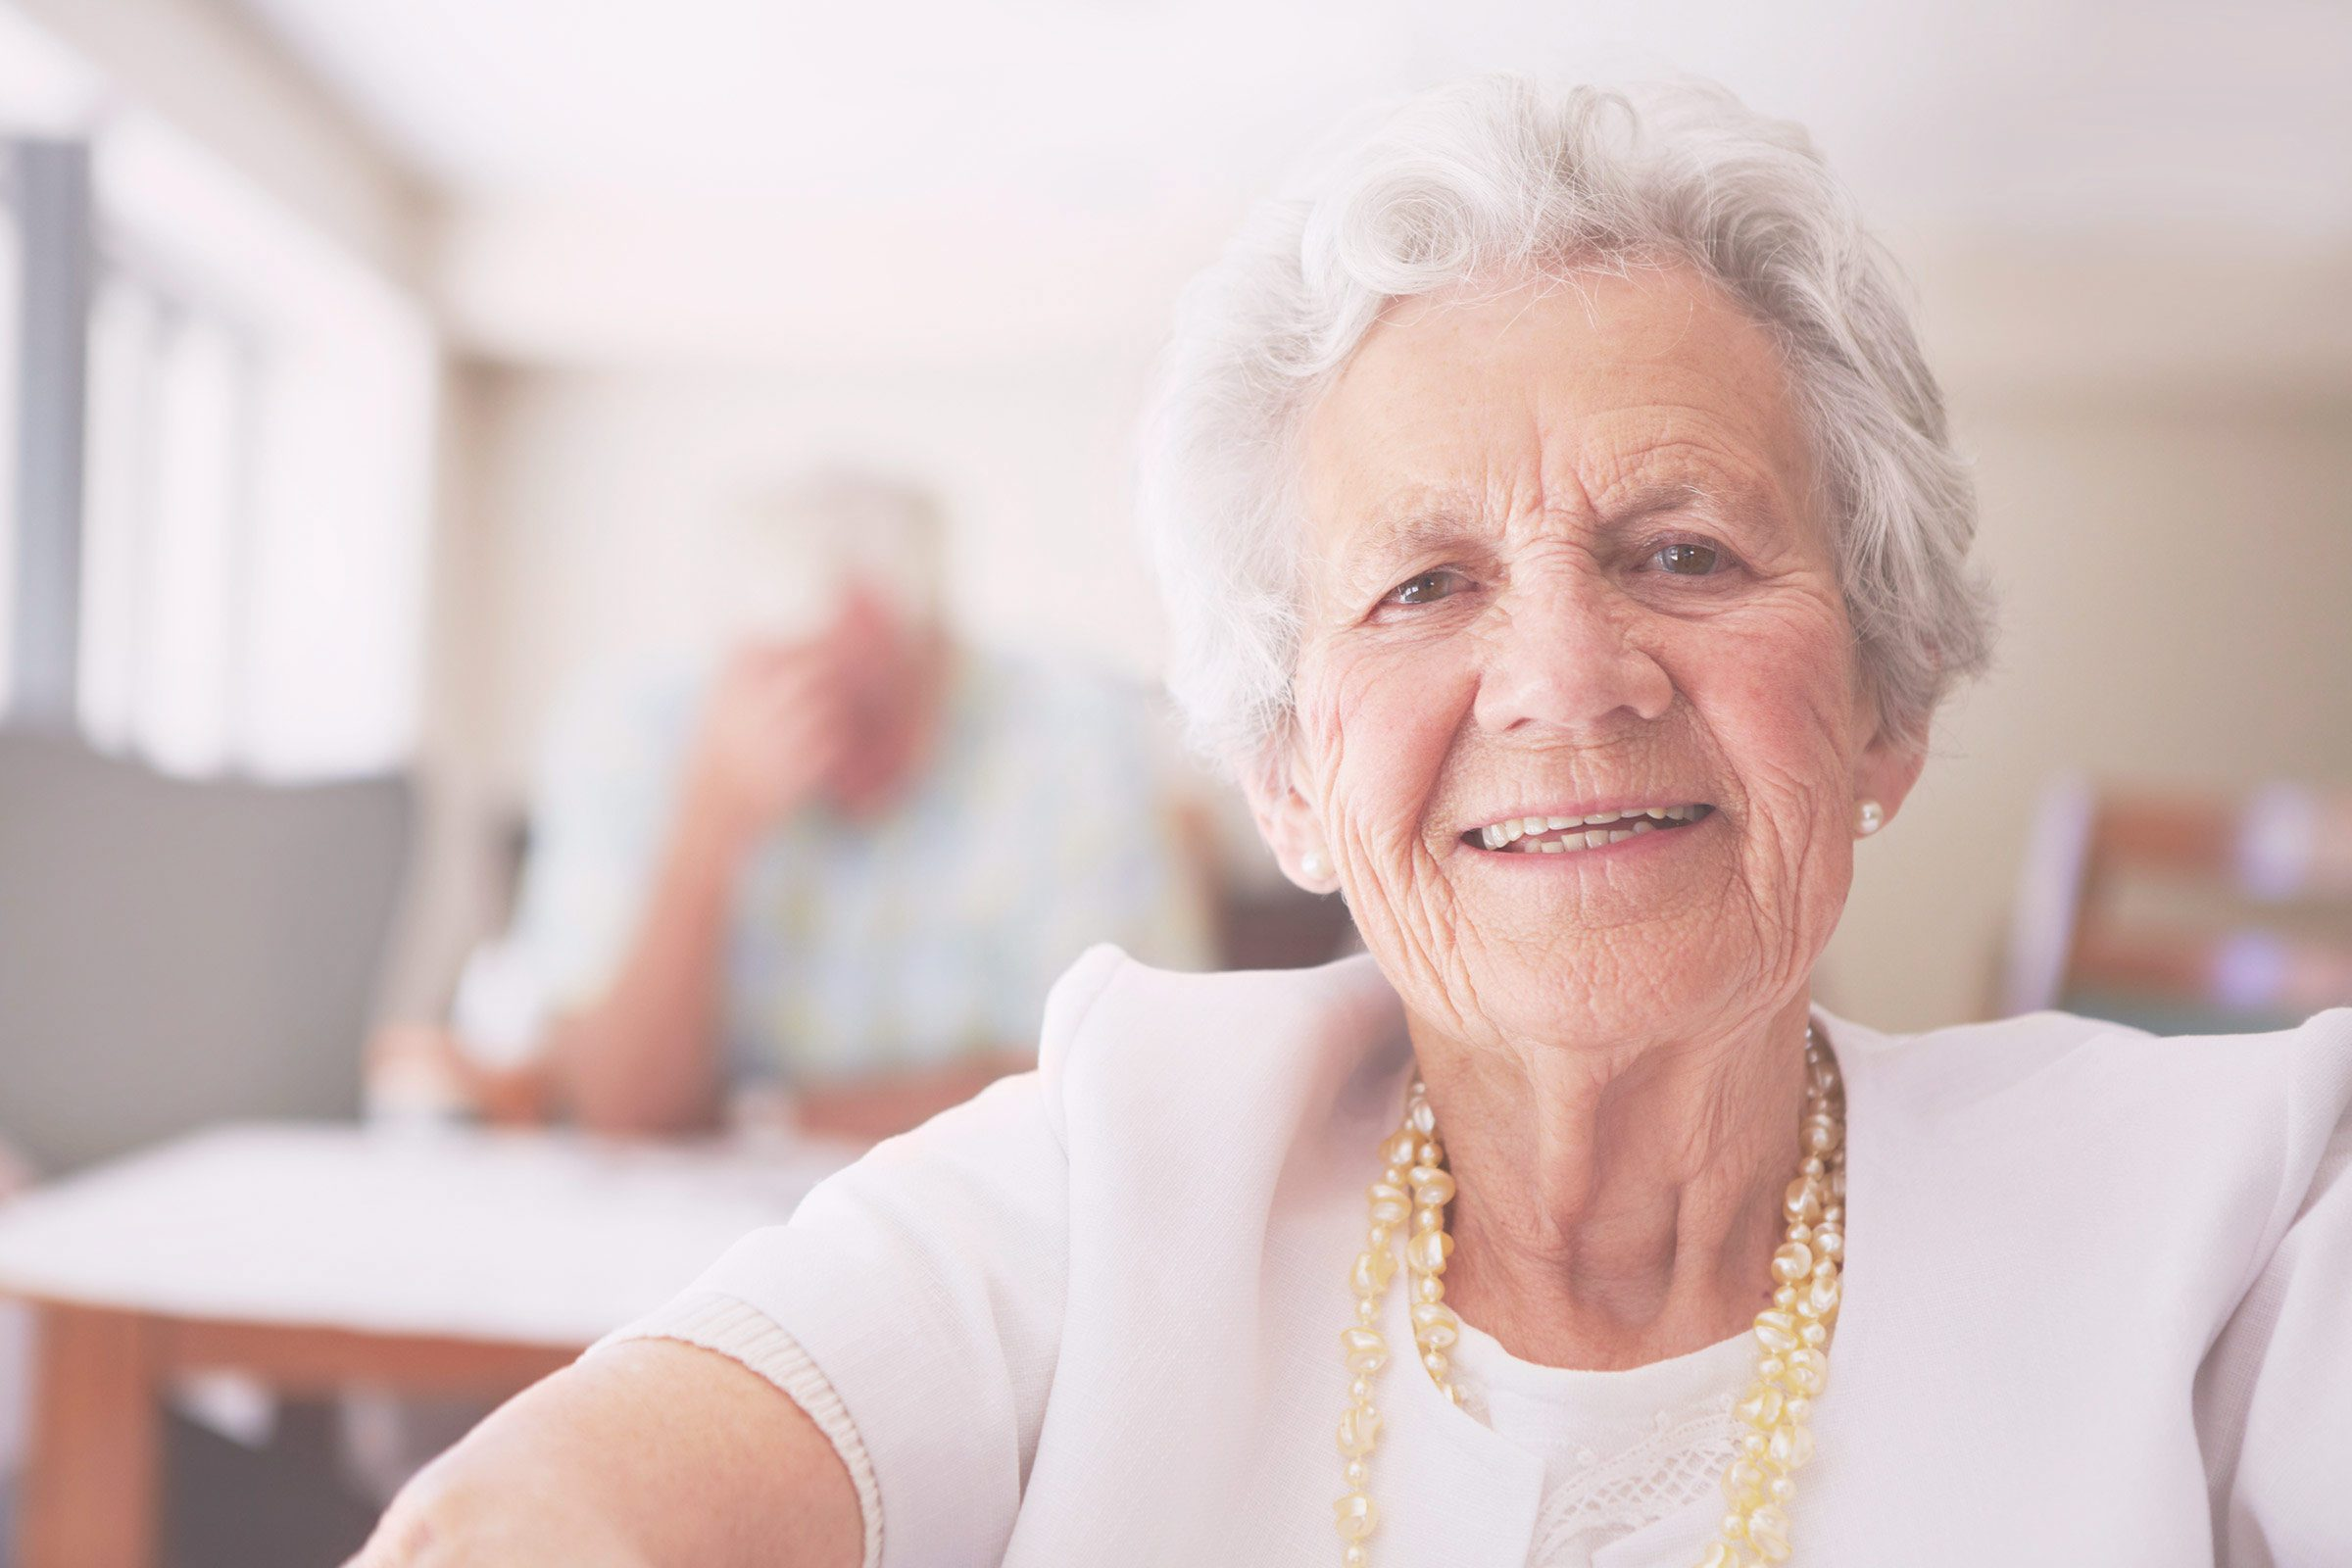 25. I love the kids, but my favorites are the little old ladies in nursing homes.